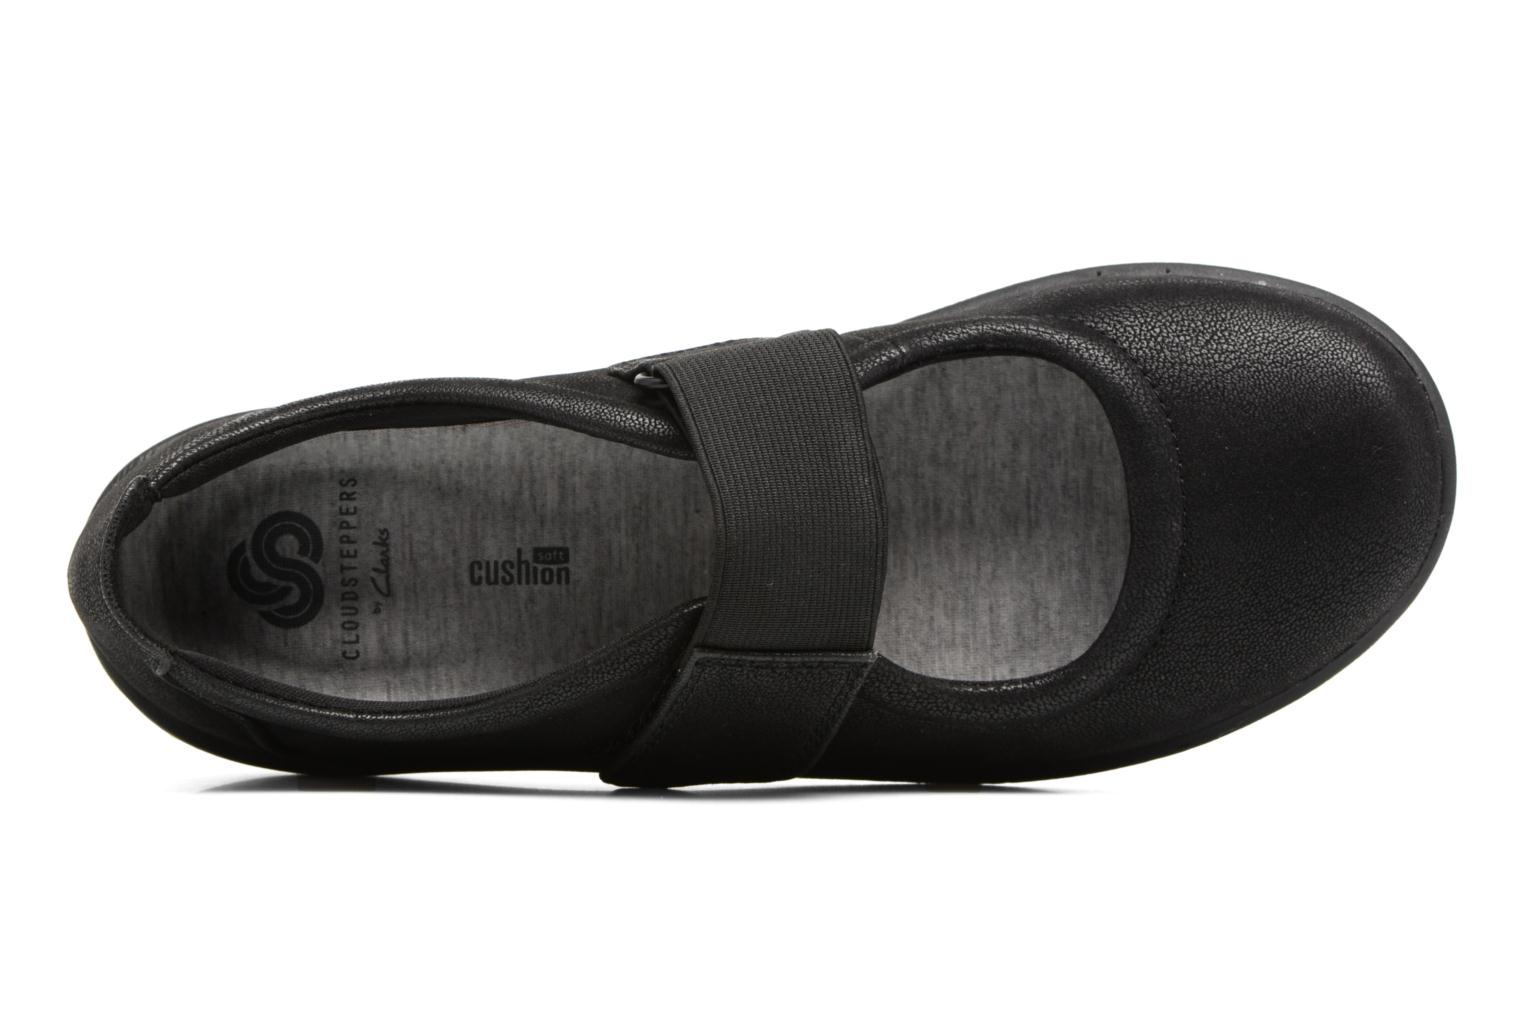 Cala Sillian Black Synthetic Clarks Clarks Black Cala Sillian Synthetic Sillian Clarks q8fTtIwx